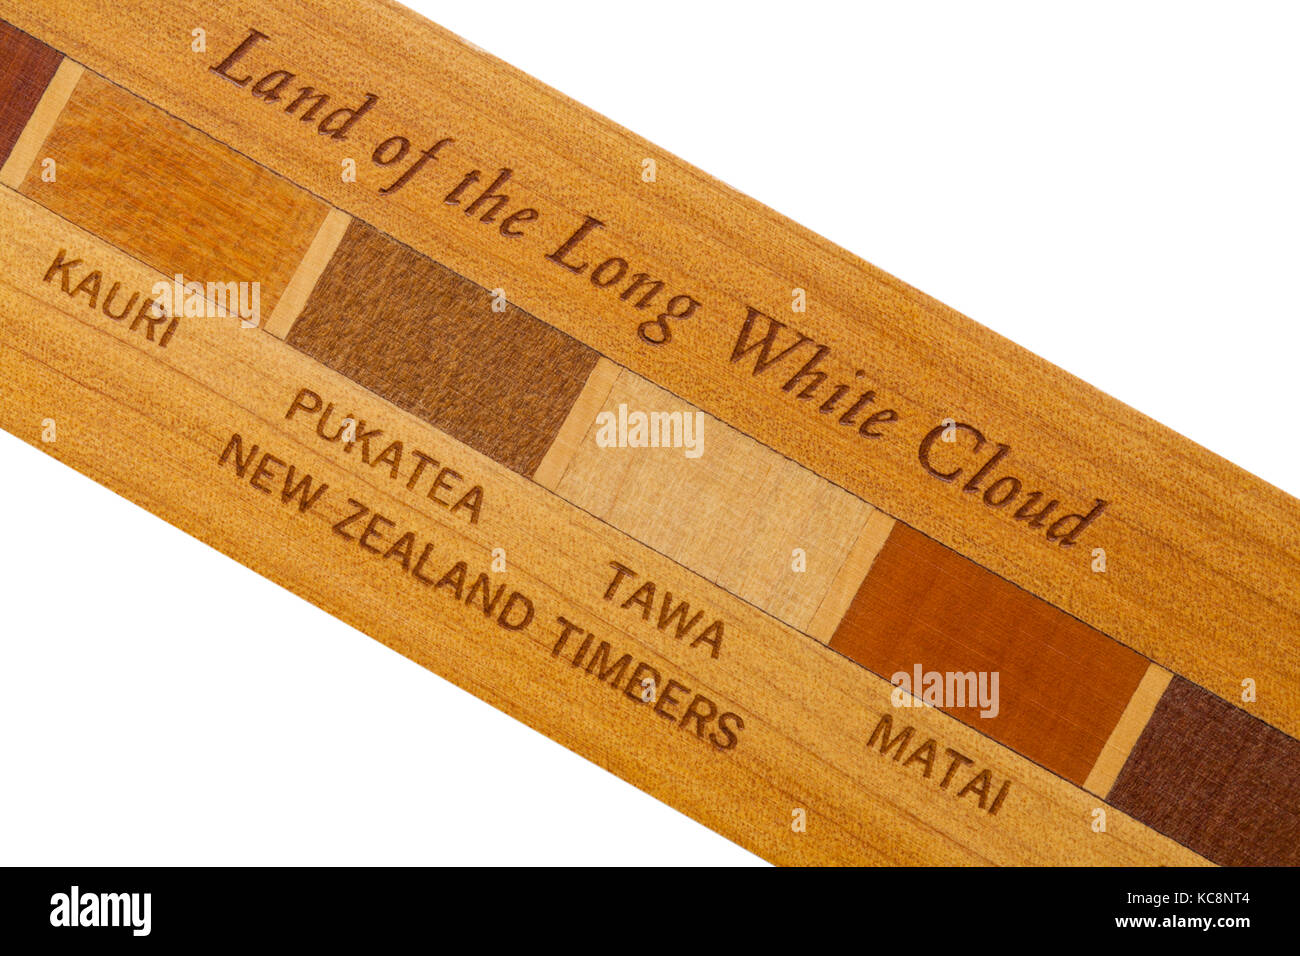 Land of the long white cloud - detail of part of wooden ruler made with New Zealand timbers, woods shown are (left - Stock Image